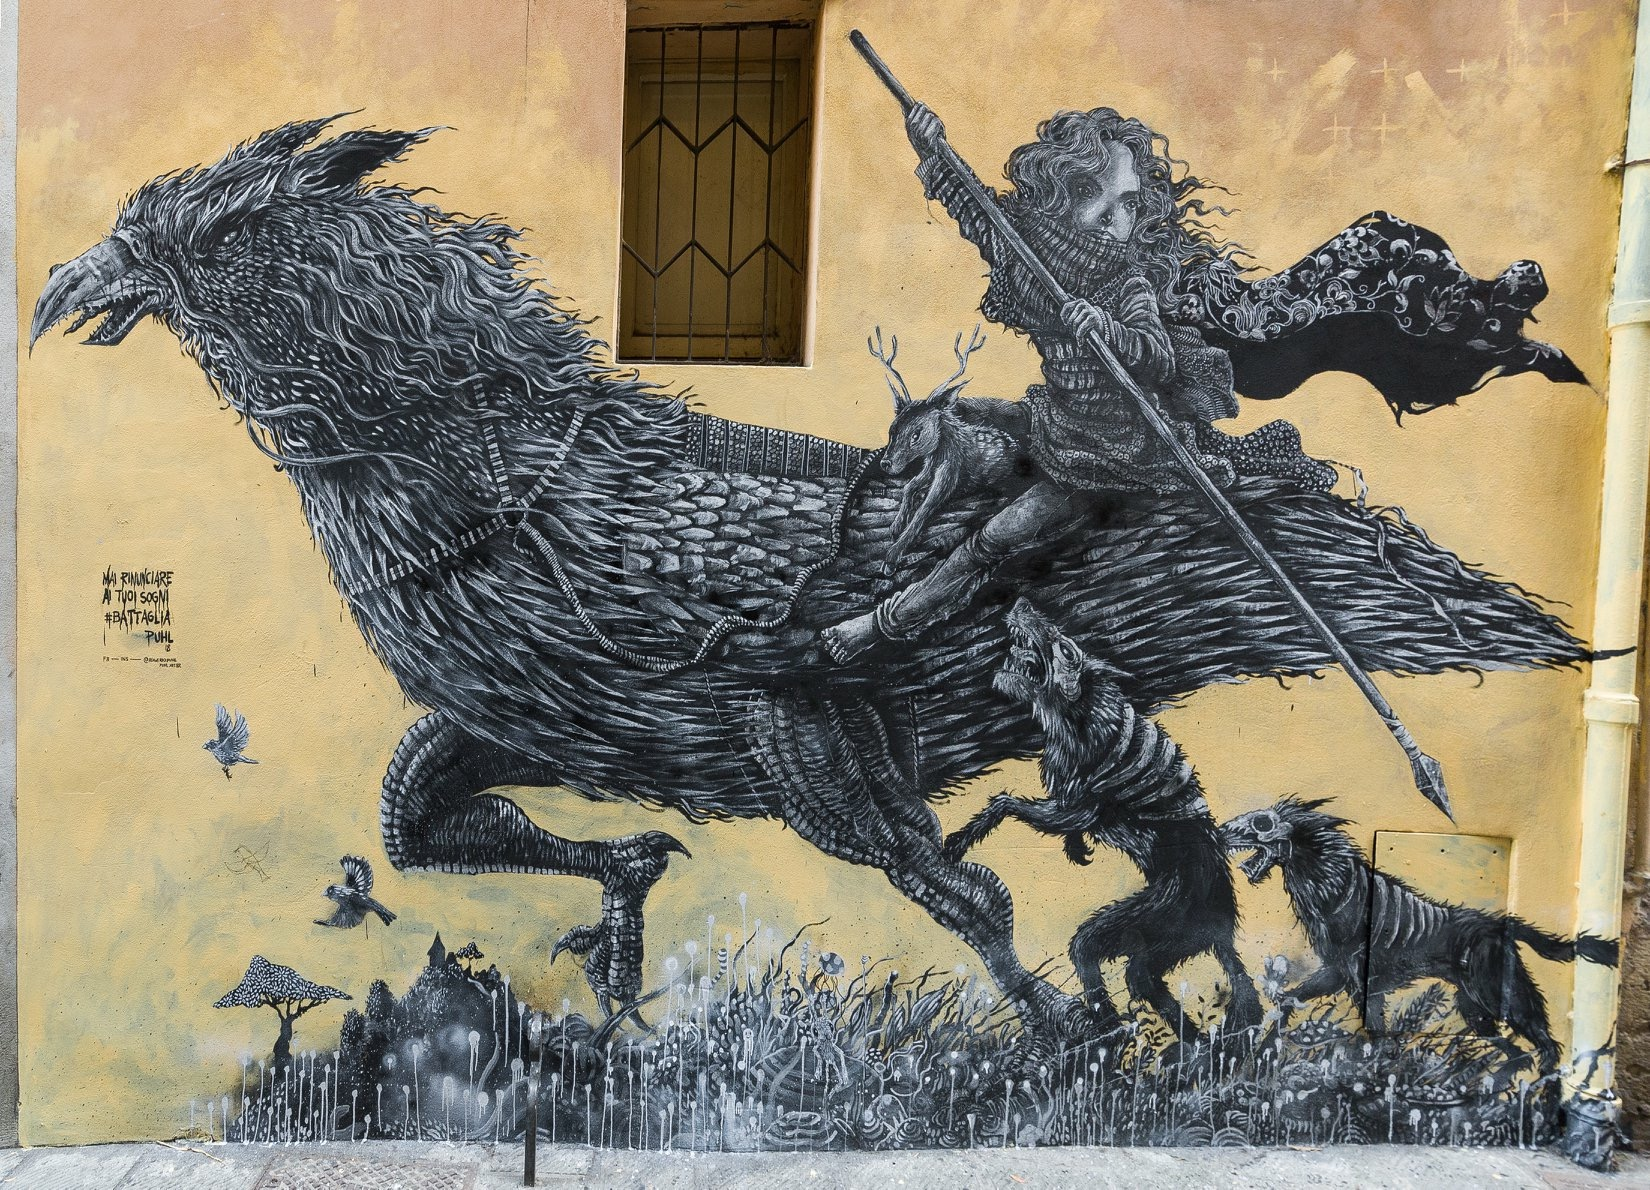 low priced e70c5 ee1a6 Puhl latest mural in Perugia, Italy | StreetArtNews ...